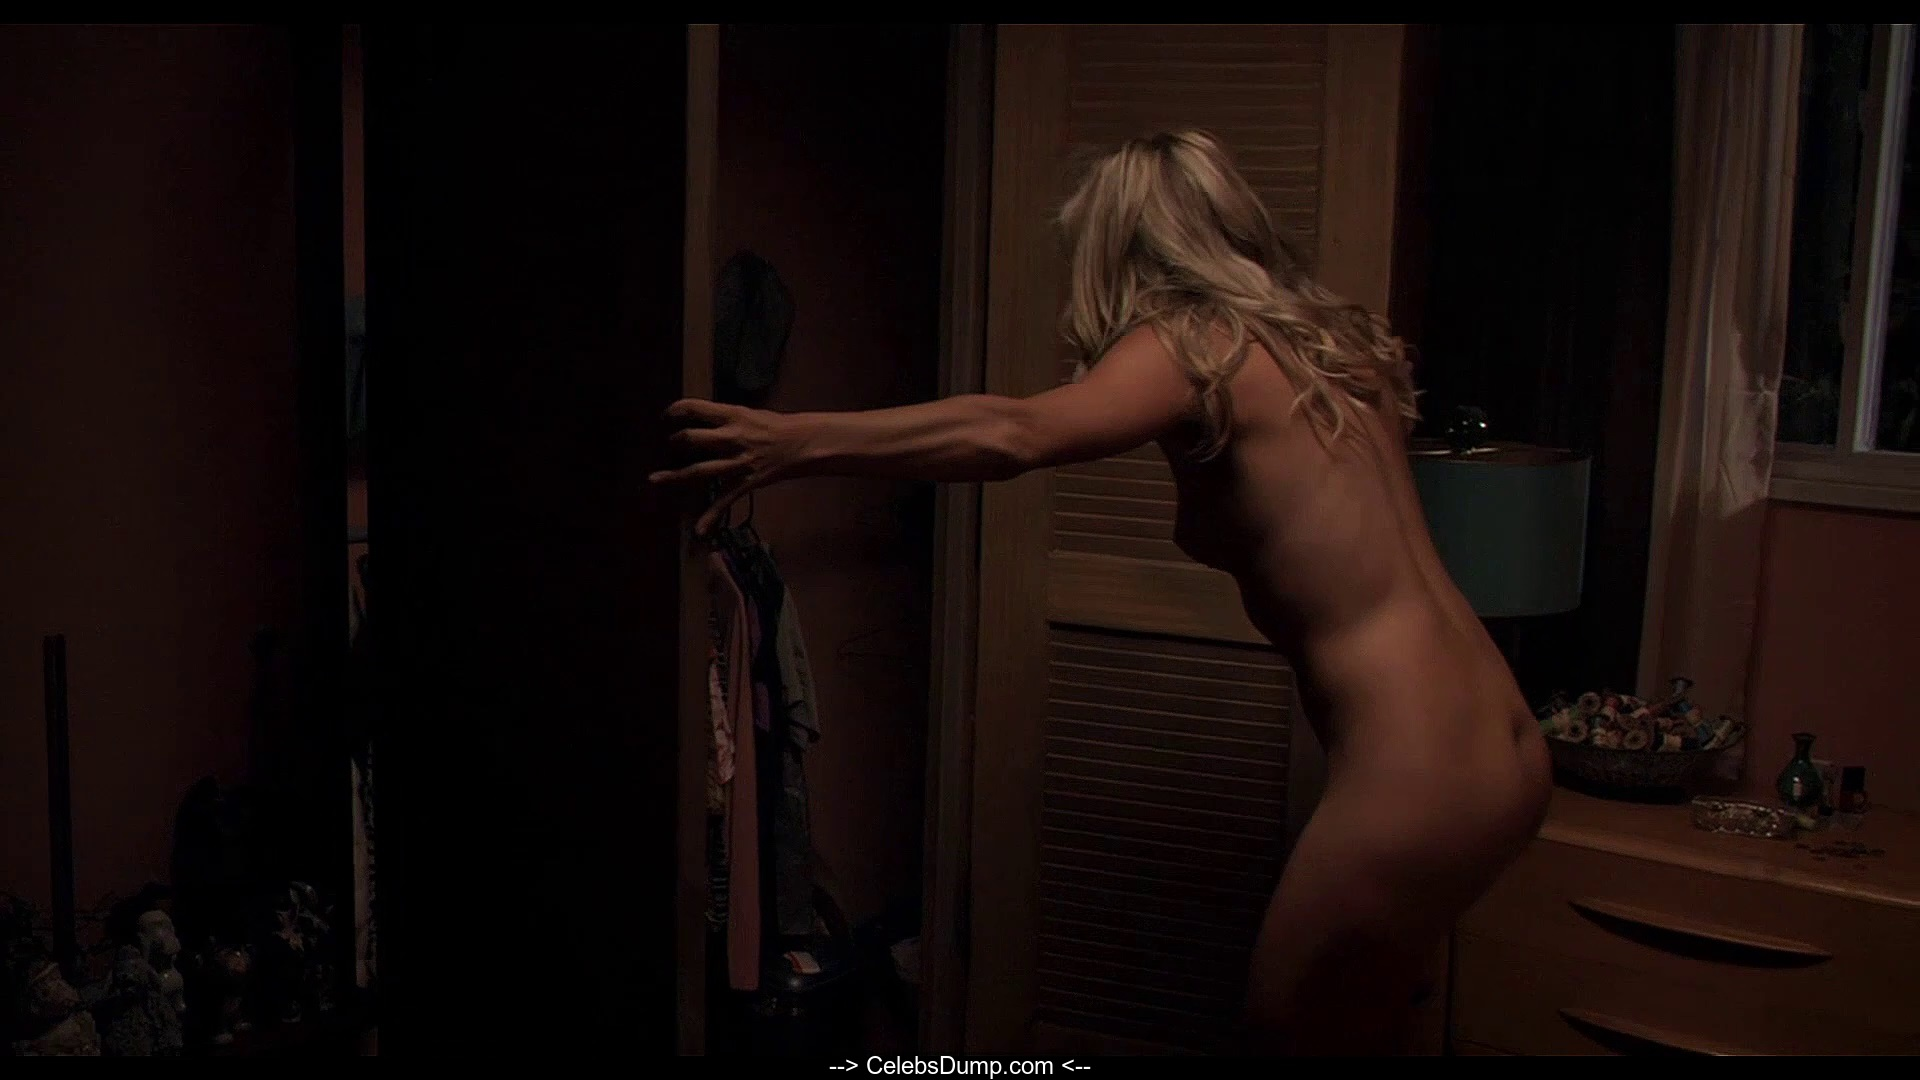 Loaded guns nude scenes review